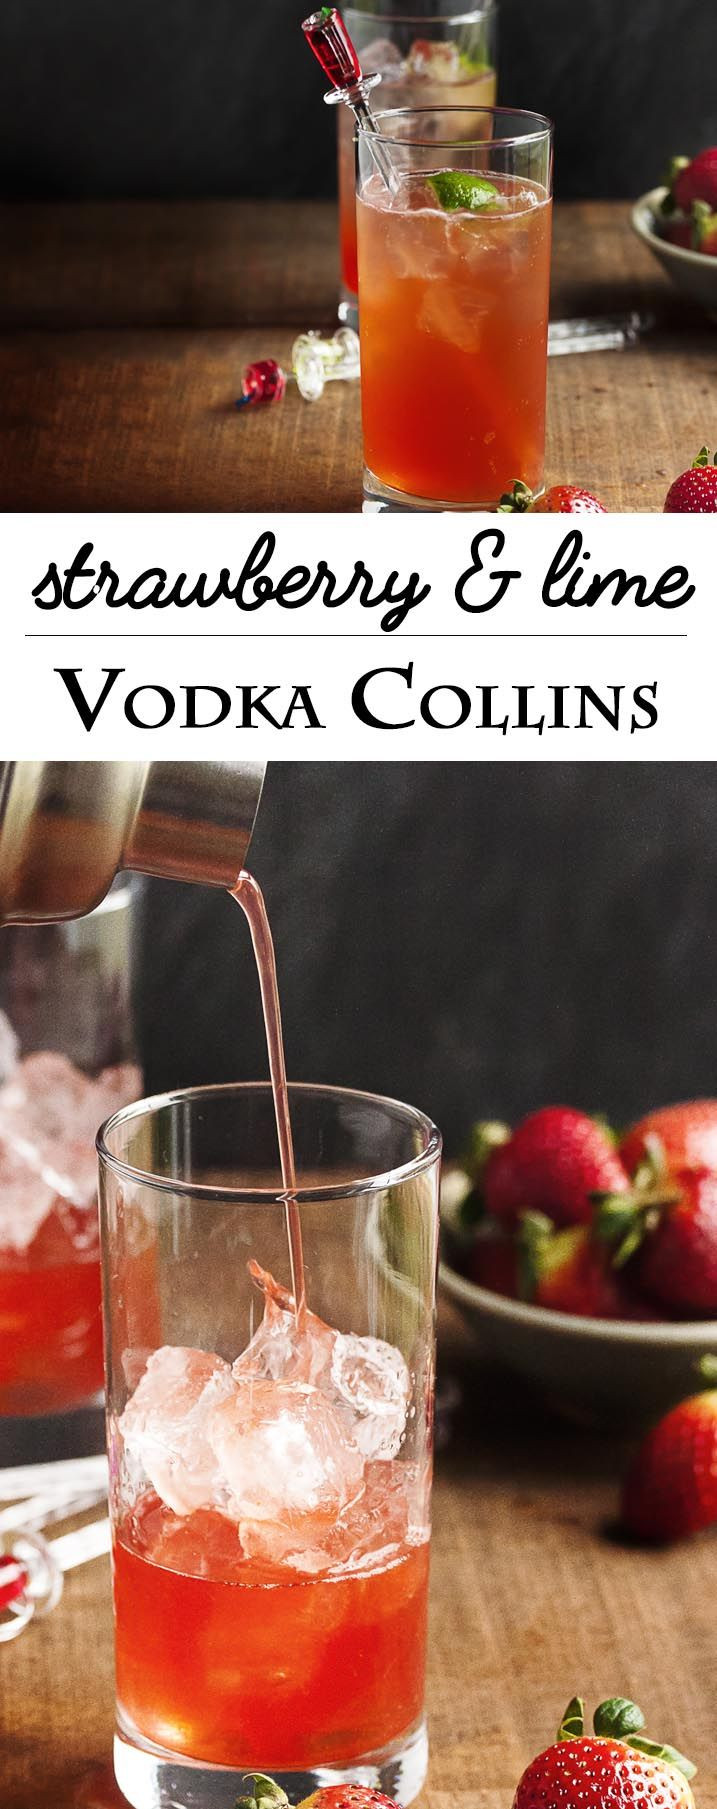 Vodka Collins Drinks  Strawberry and Lime Vodka Collins Recipe